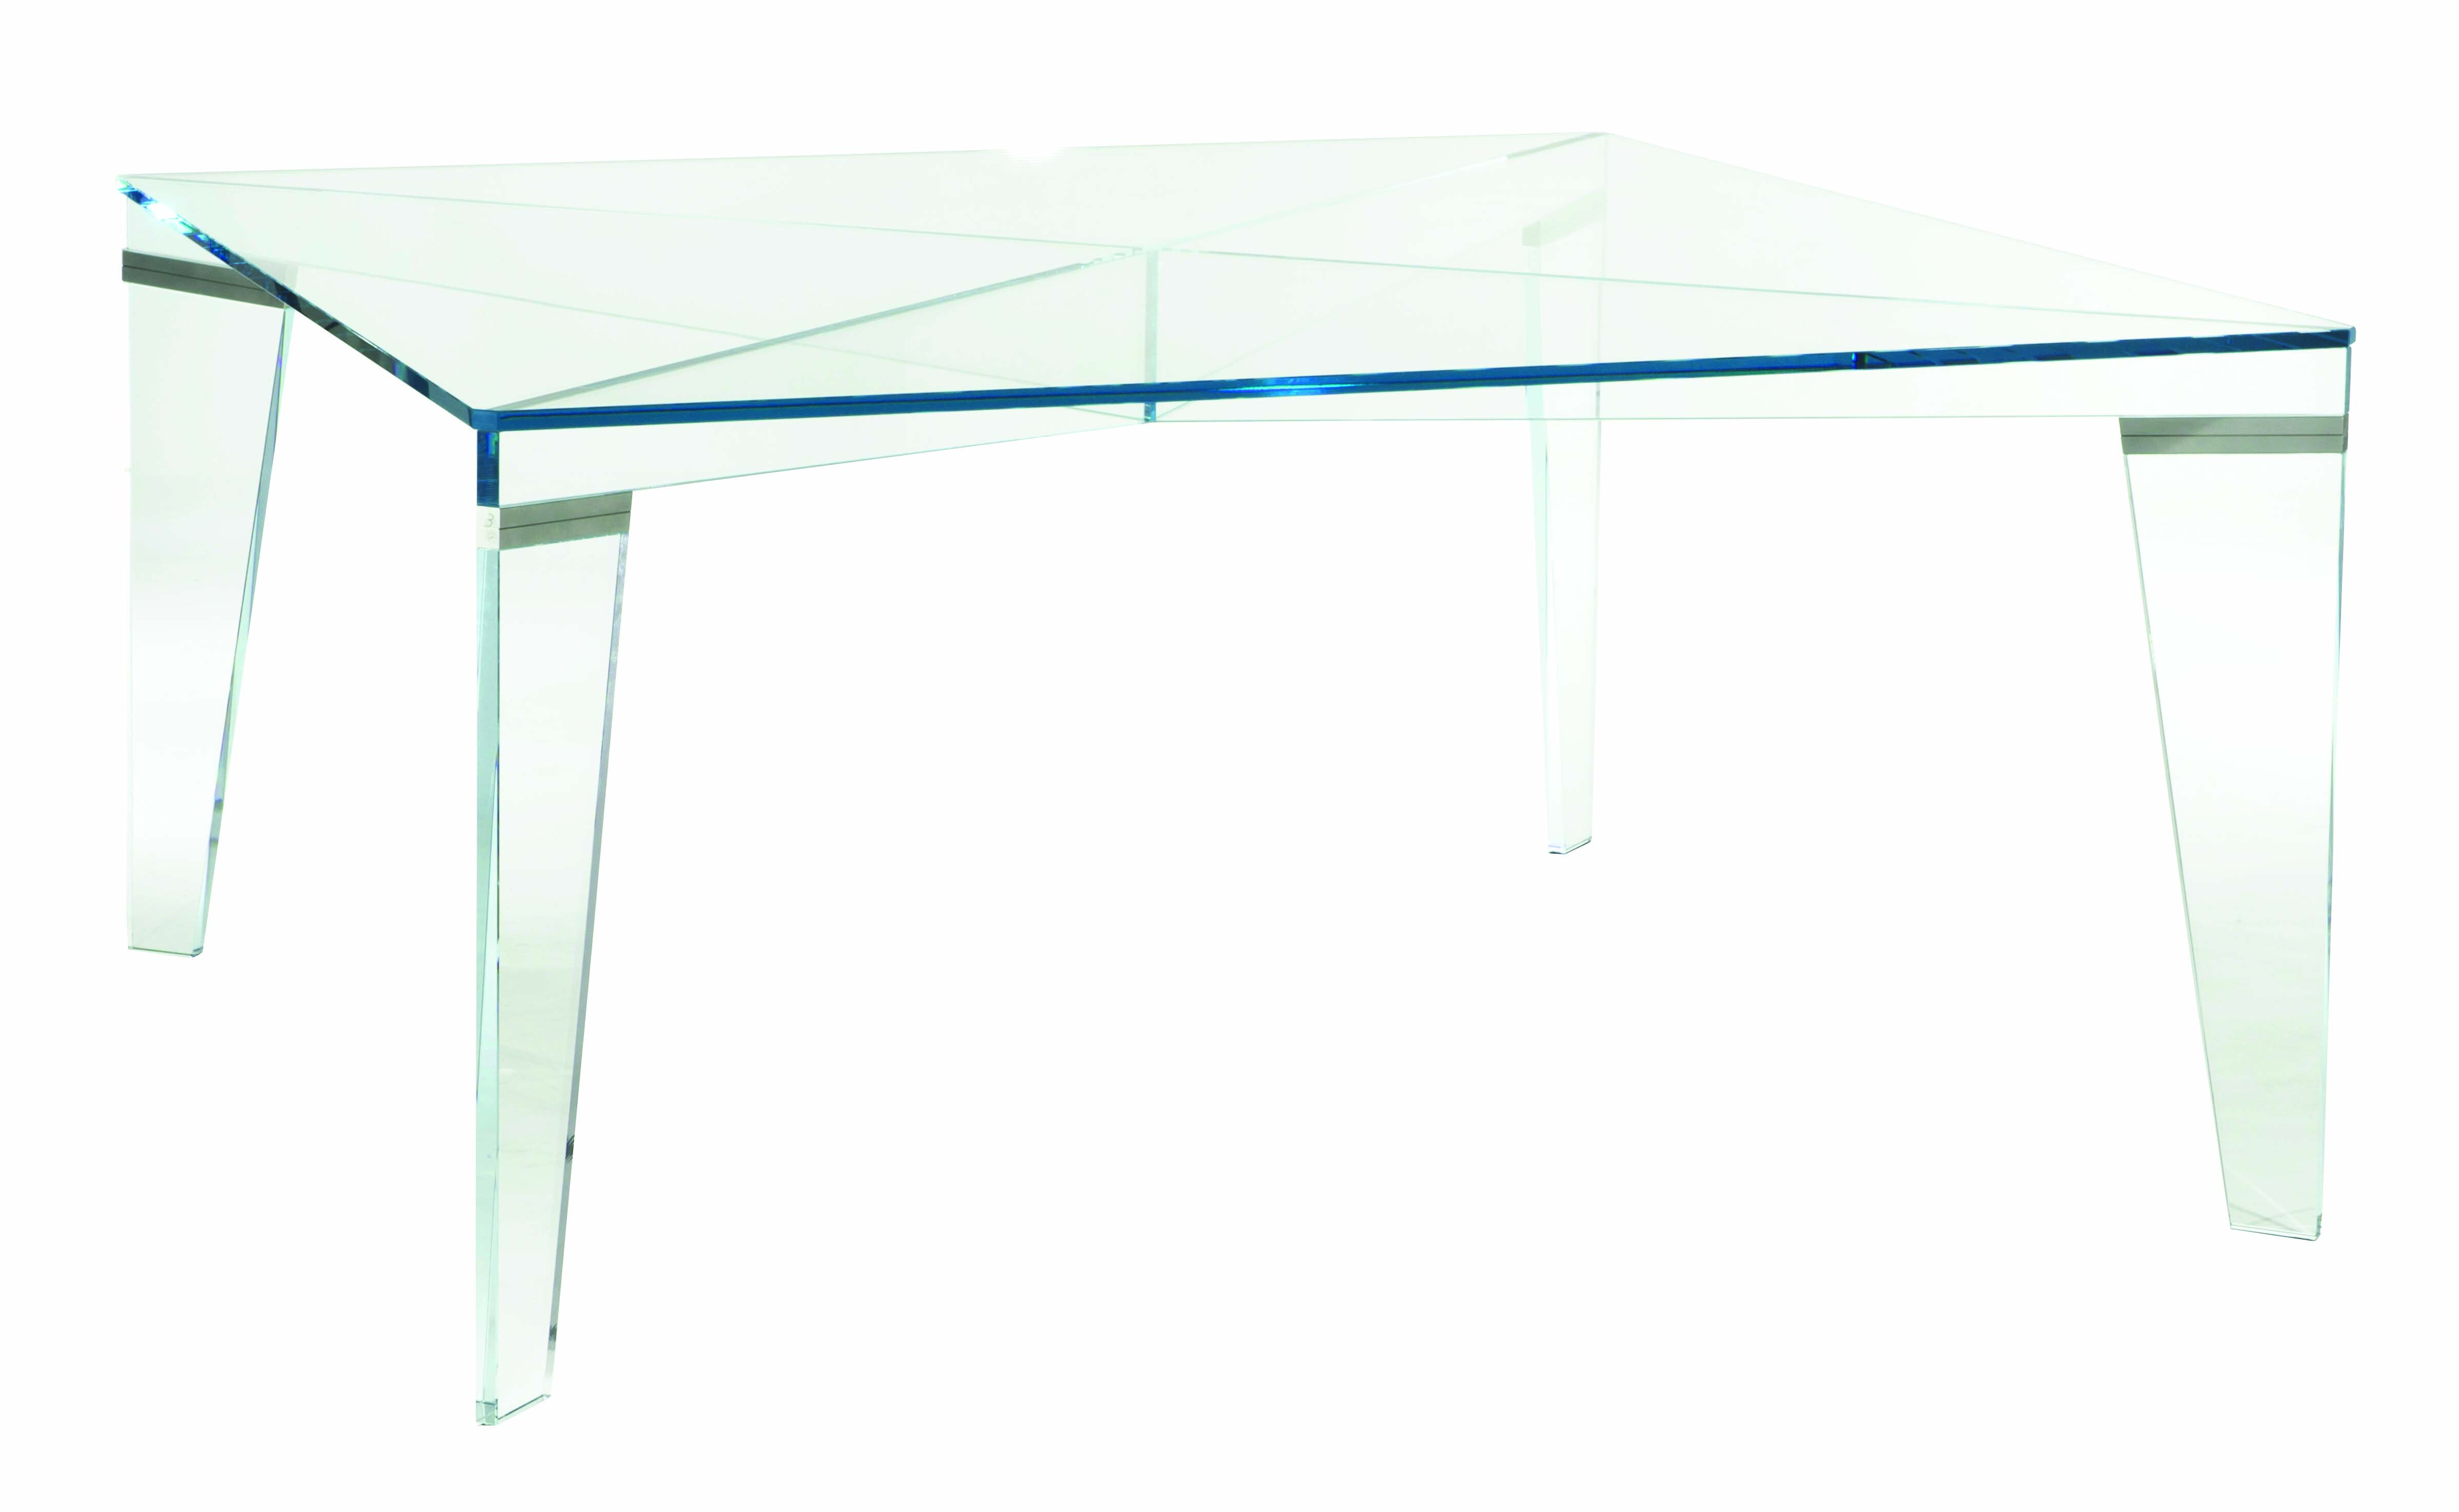 Table rectangulaire en verre vermet by roche bobois design sacha lakic - Prix table roche bobois ...